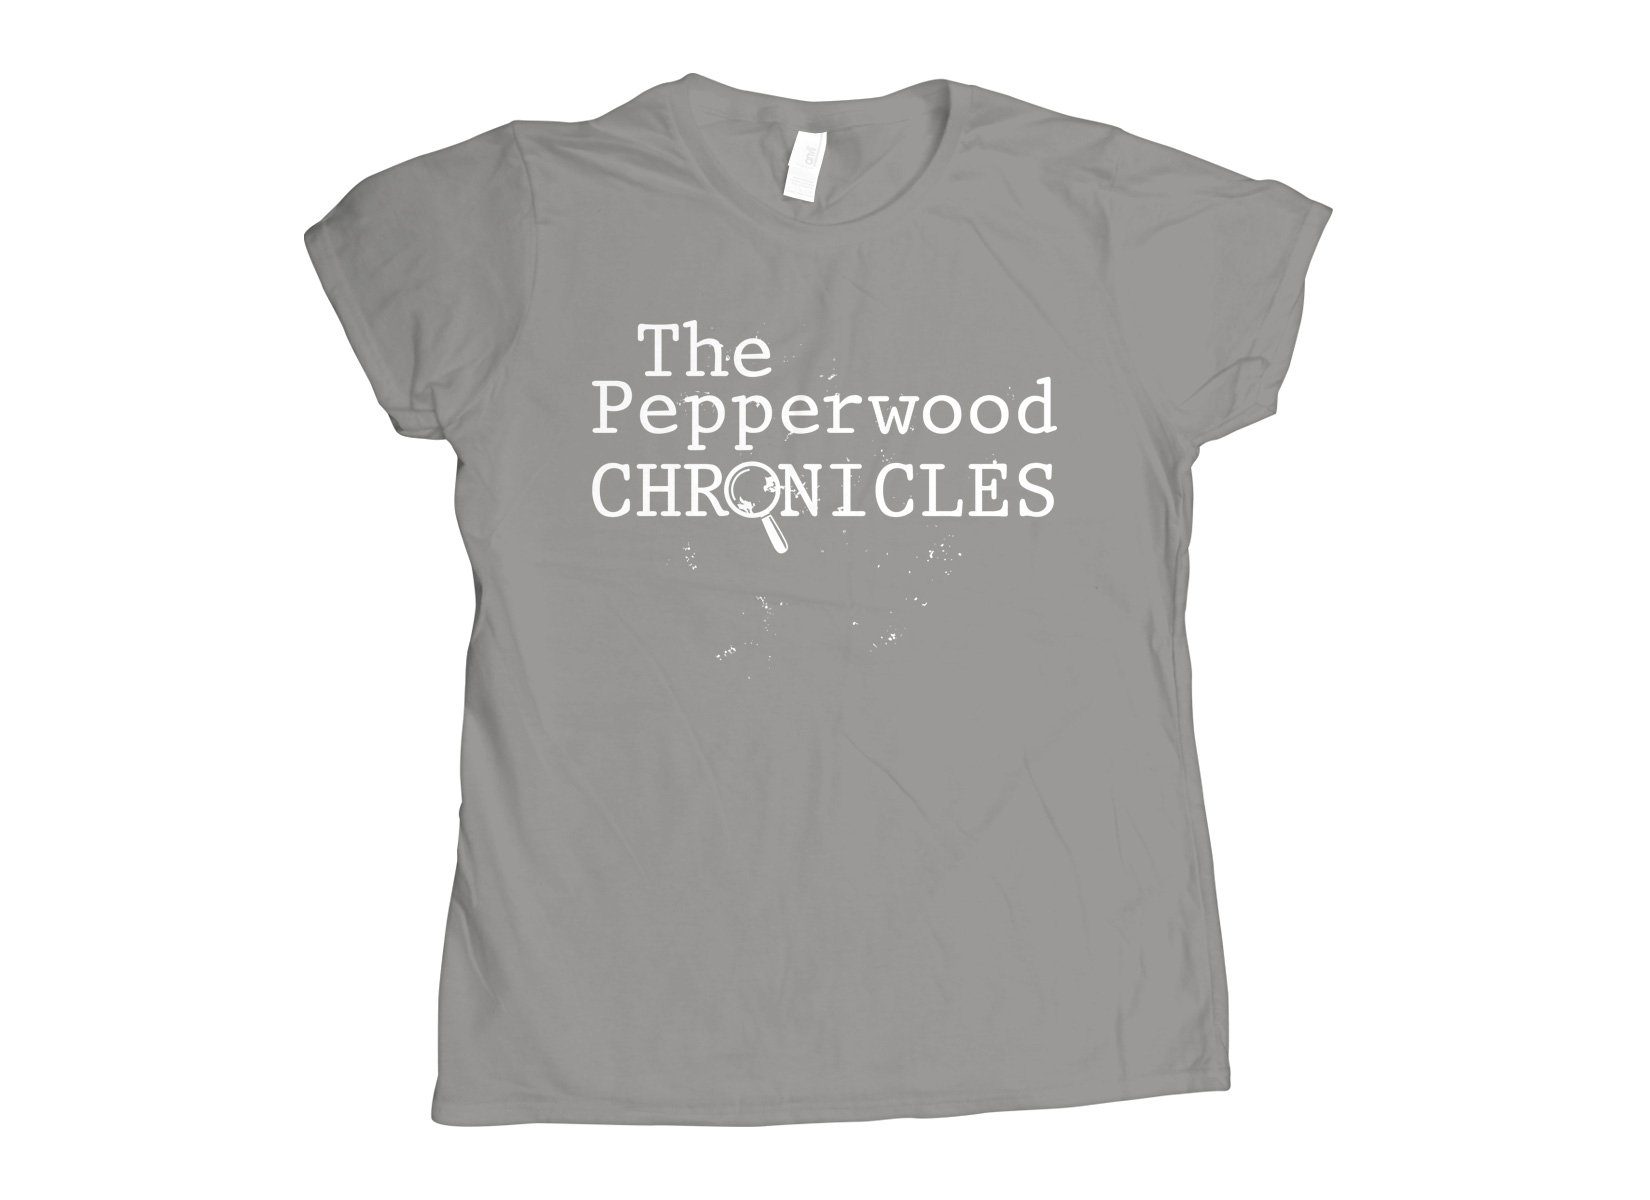 The Pepperwood Chronicles on Womens T-Shirt